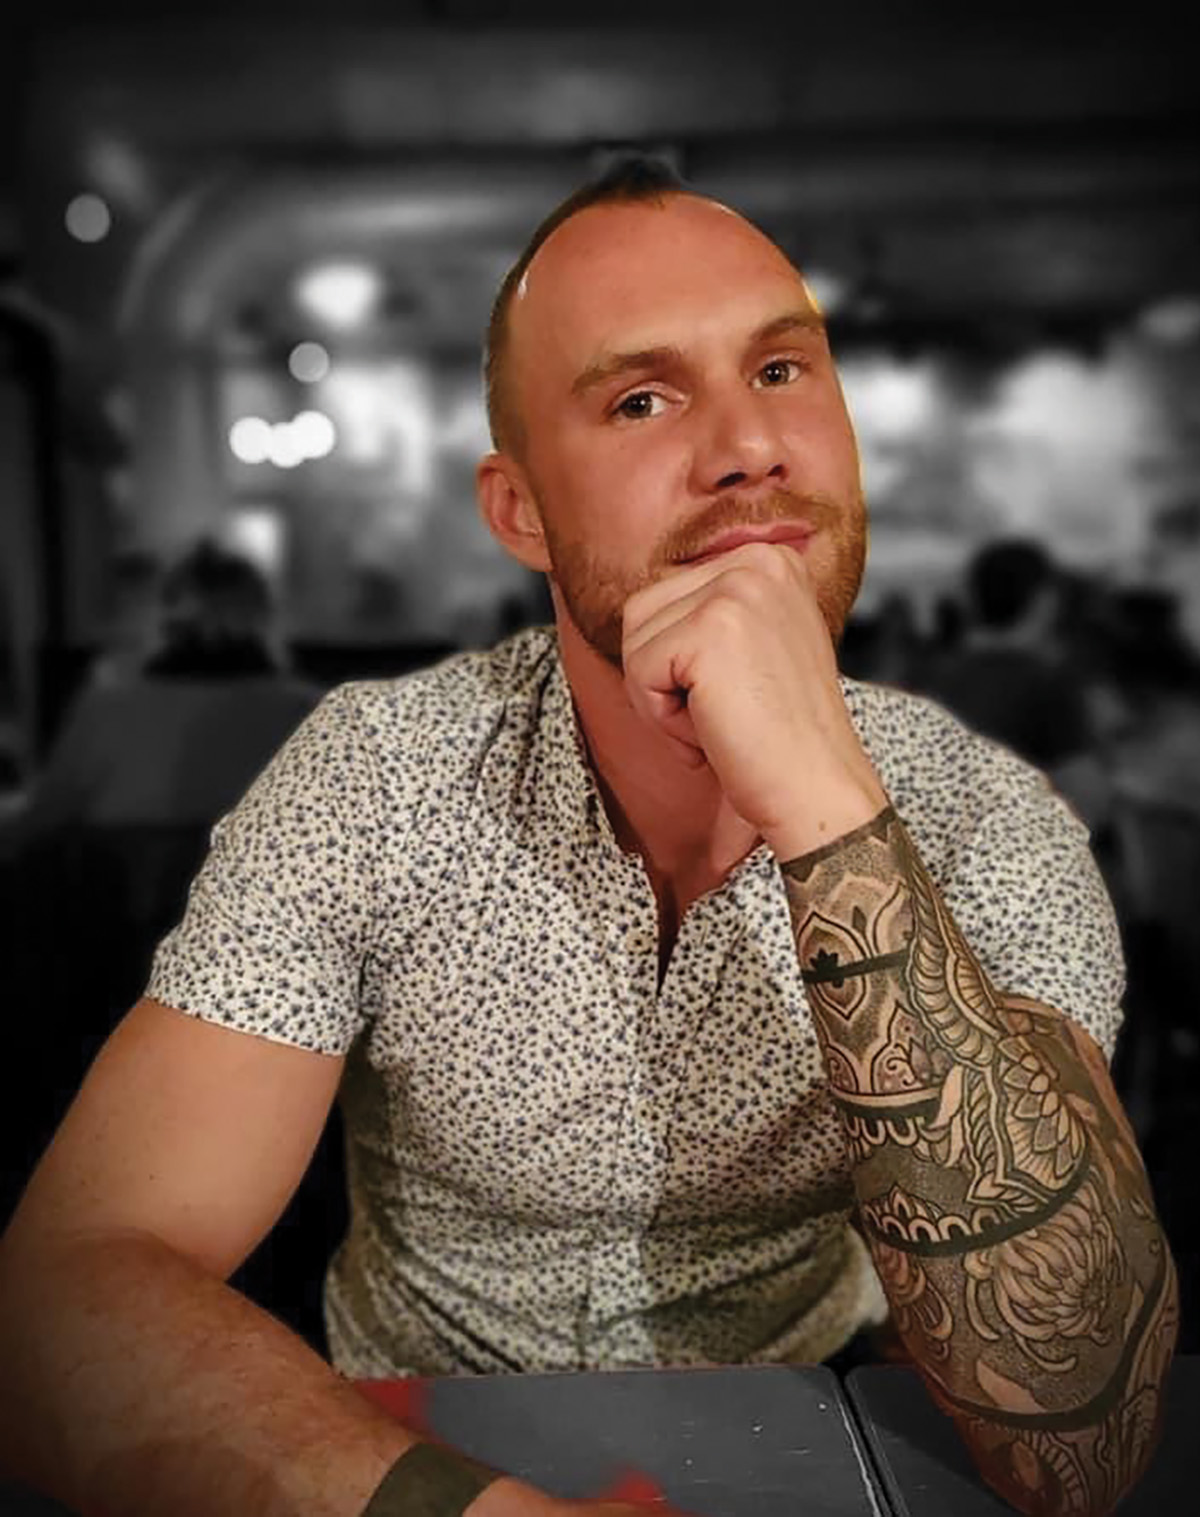 Devin P. Hussey sits at a table wearing a patterned shirt in an environmental portrait.